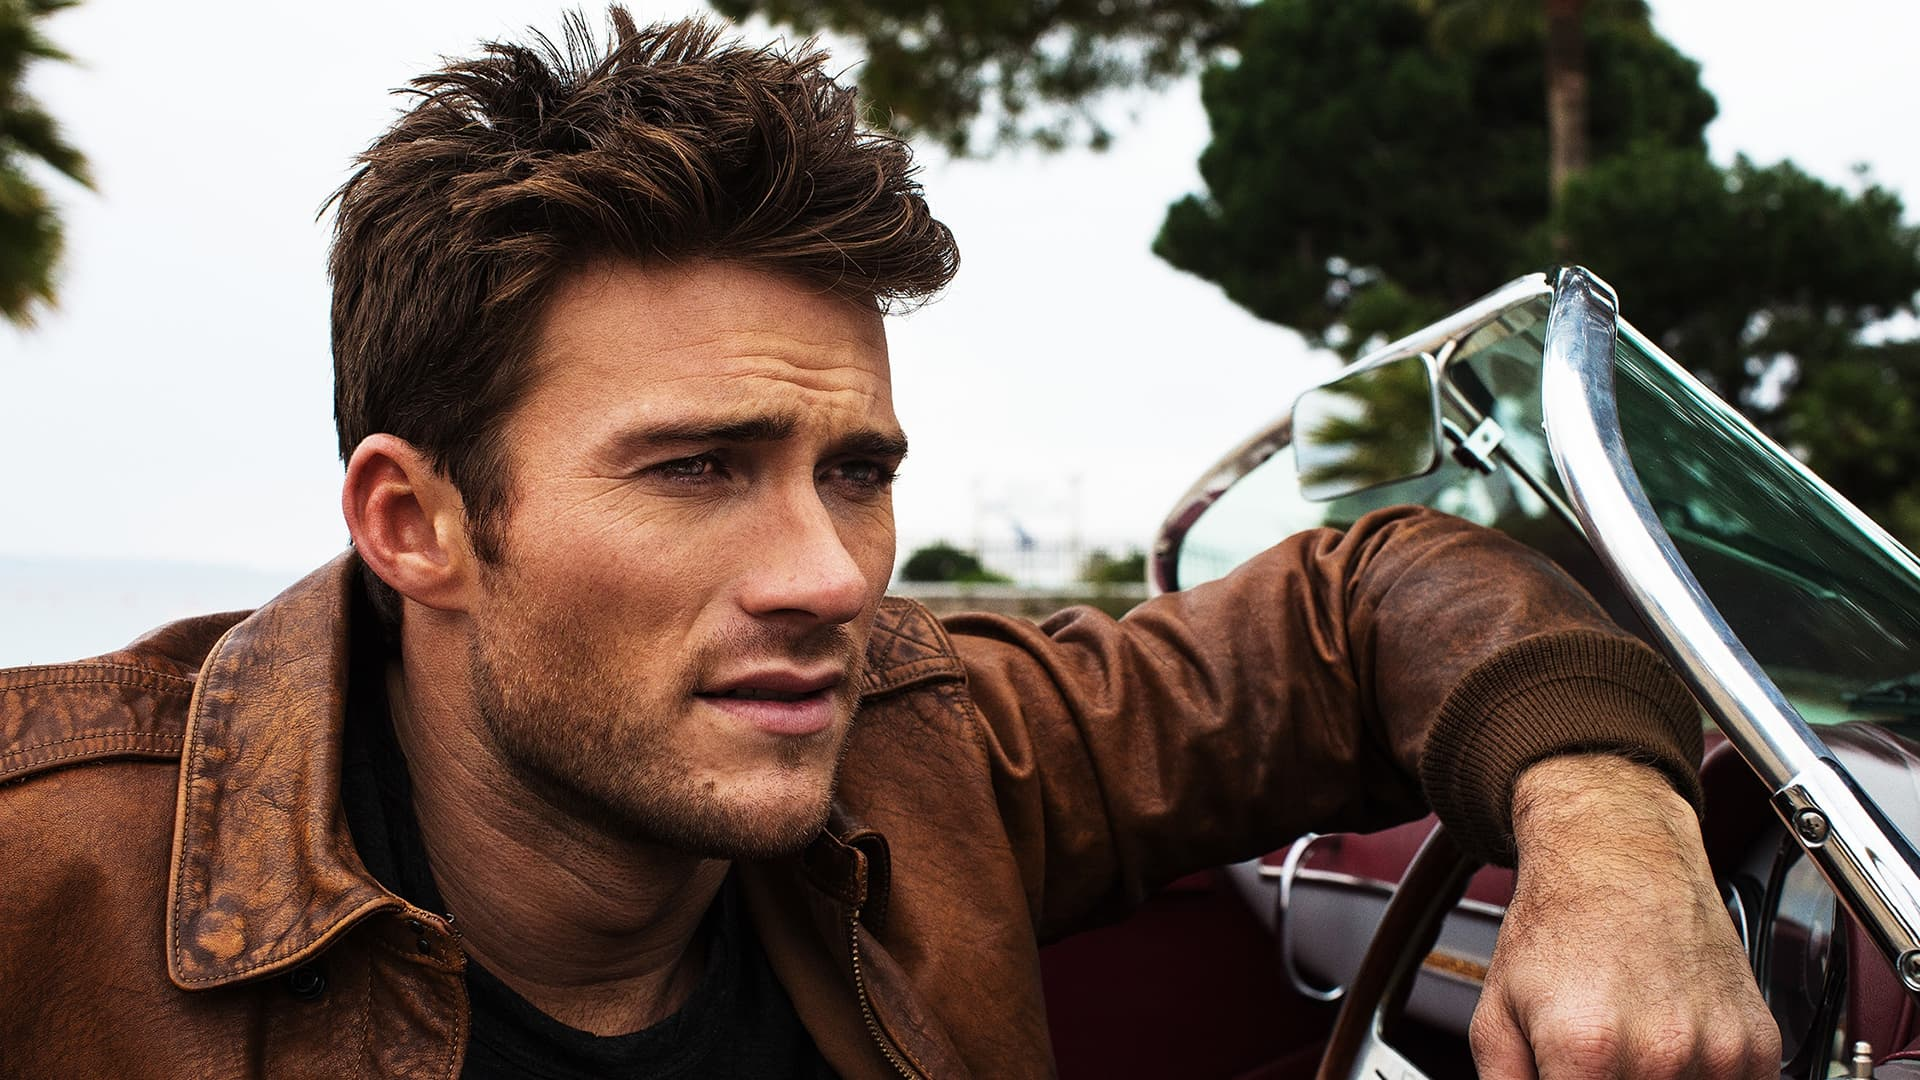 Hq Car Wallpapers Scott Eastwood Wallpapers Hd High Quality Download